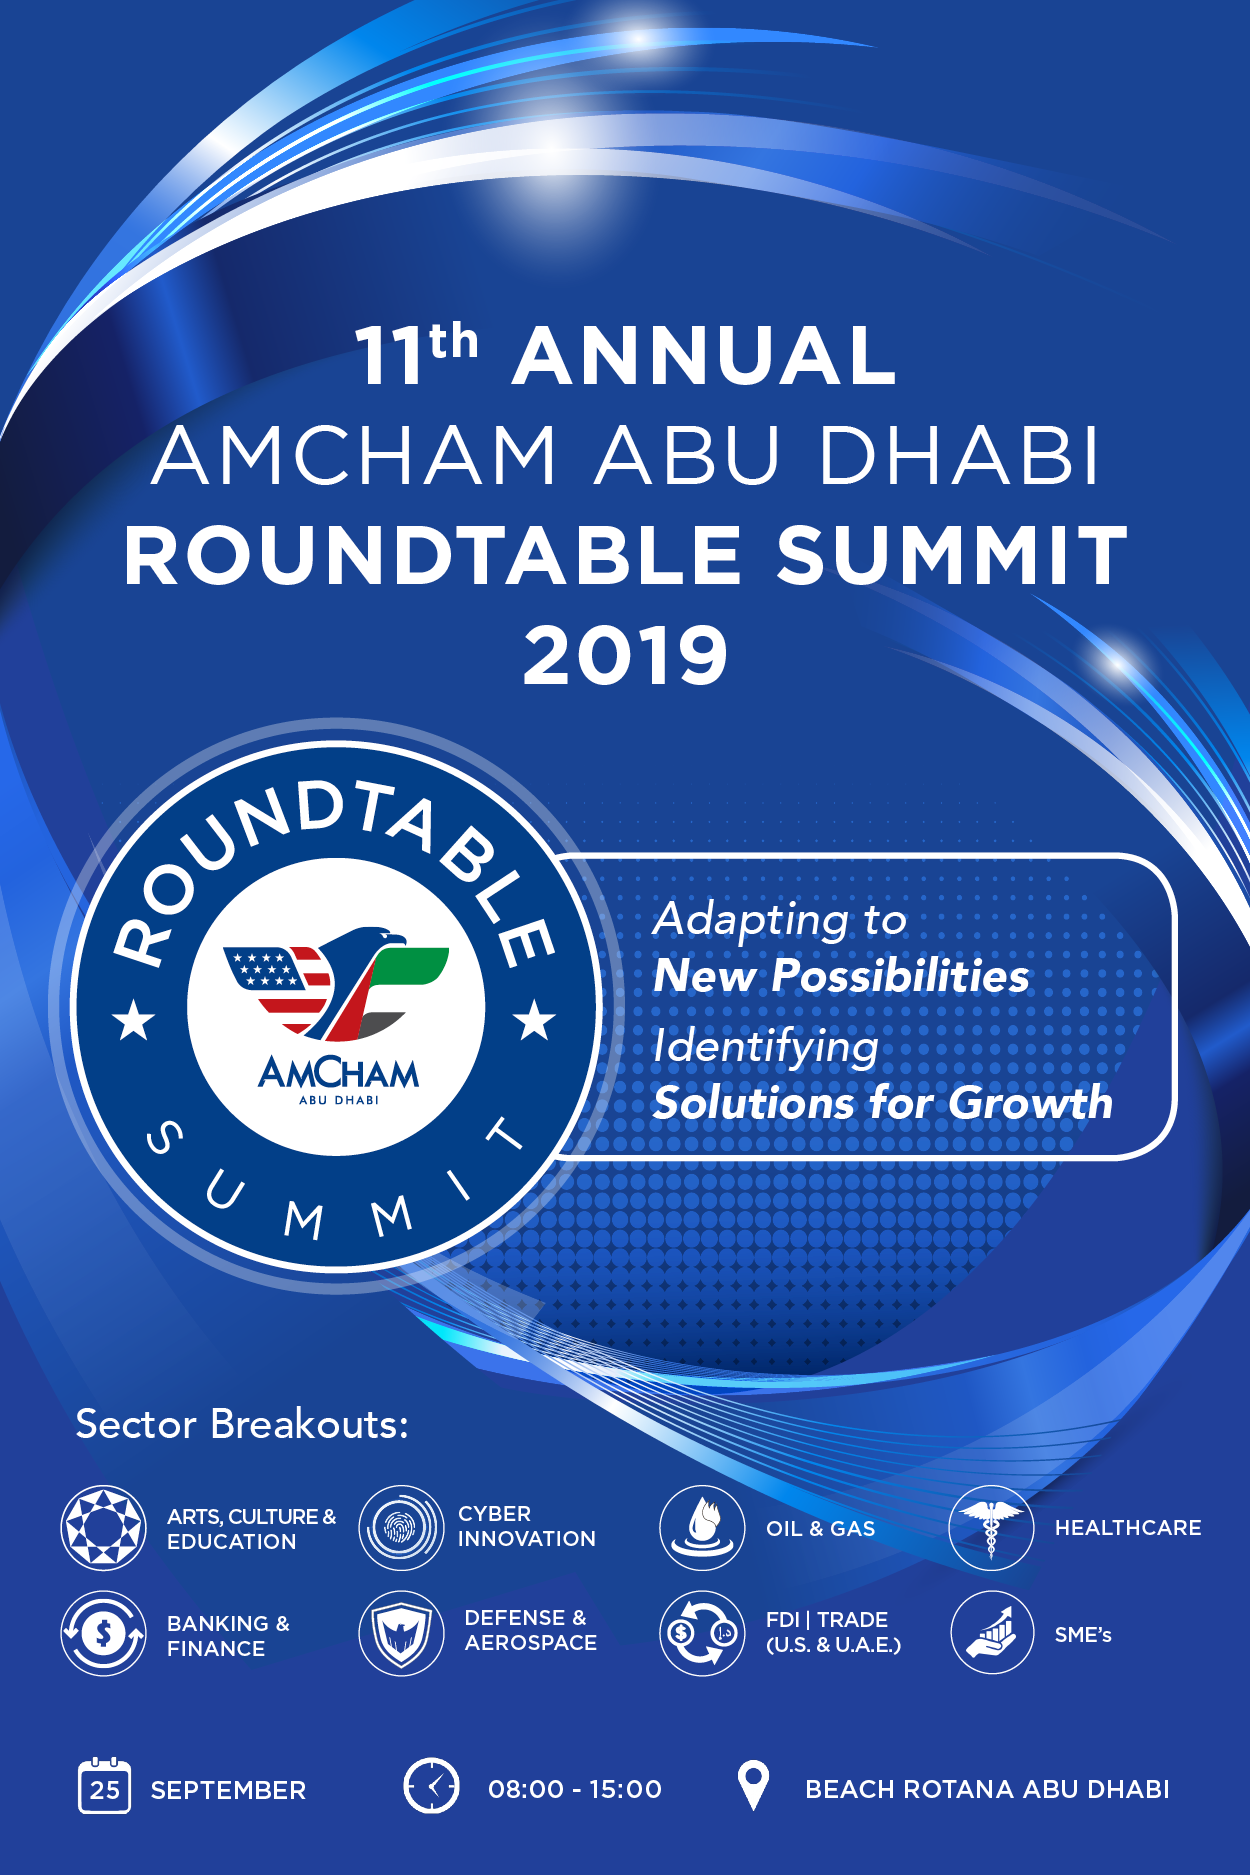 AMCHAM ABU DHABI ROUND TABLE SUMMIT 2019